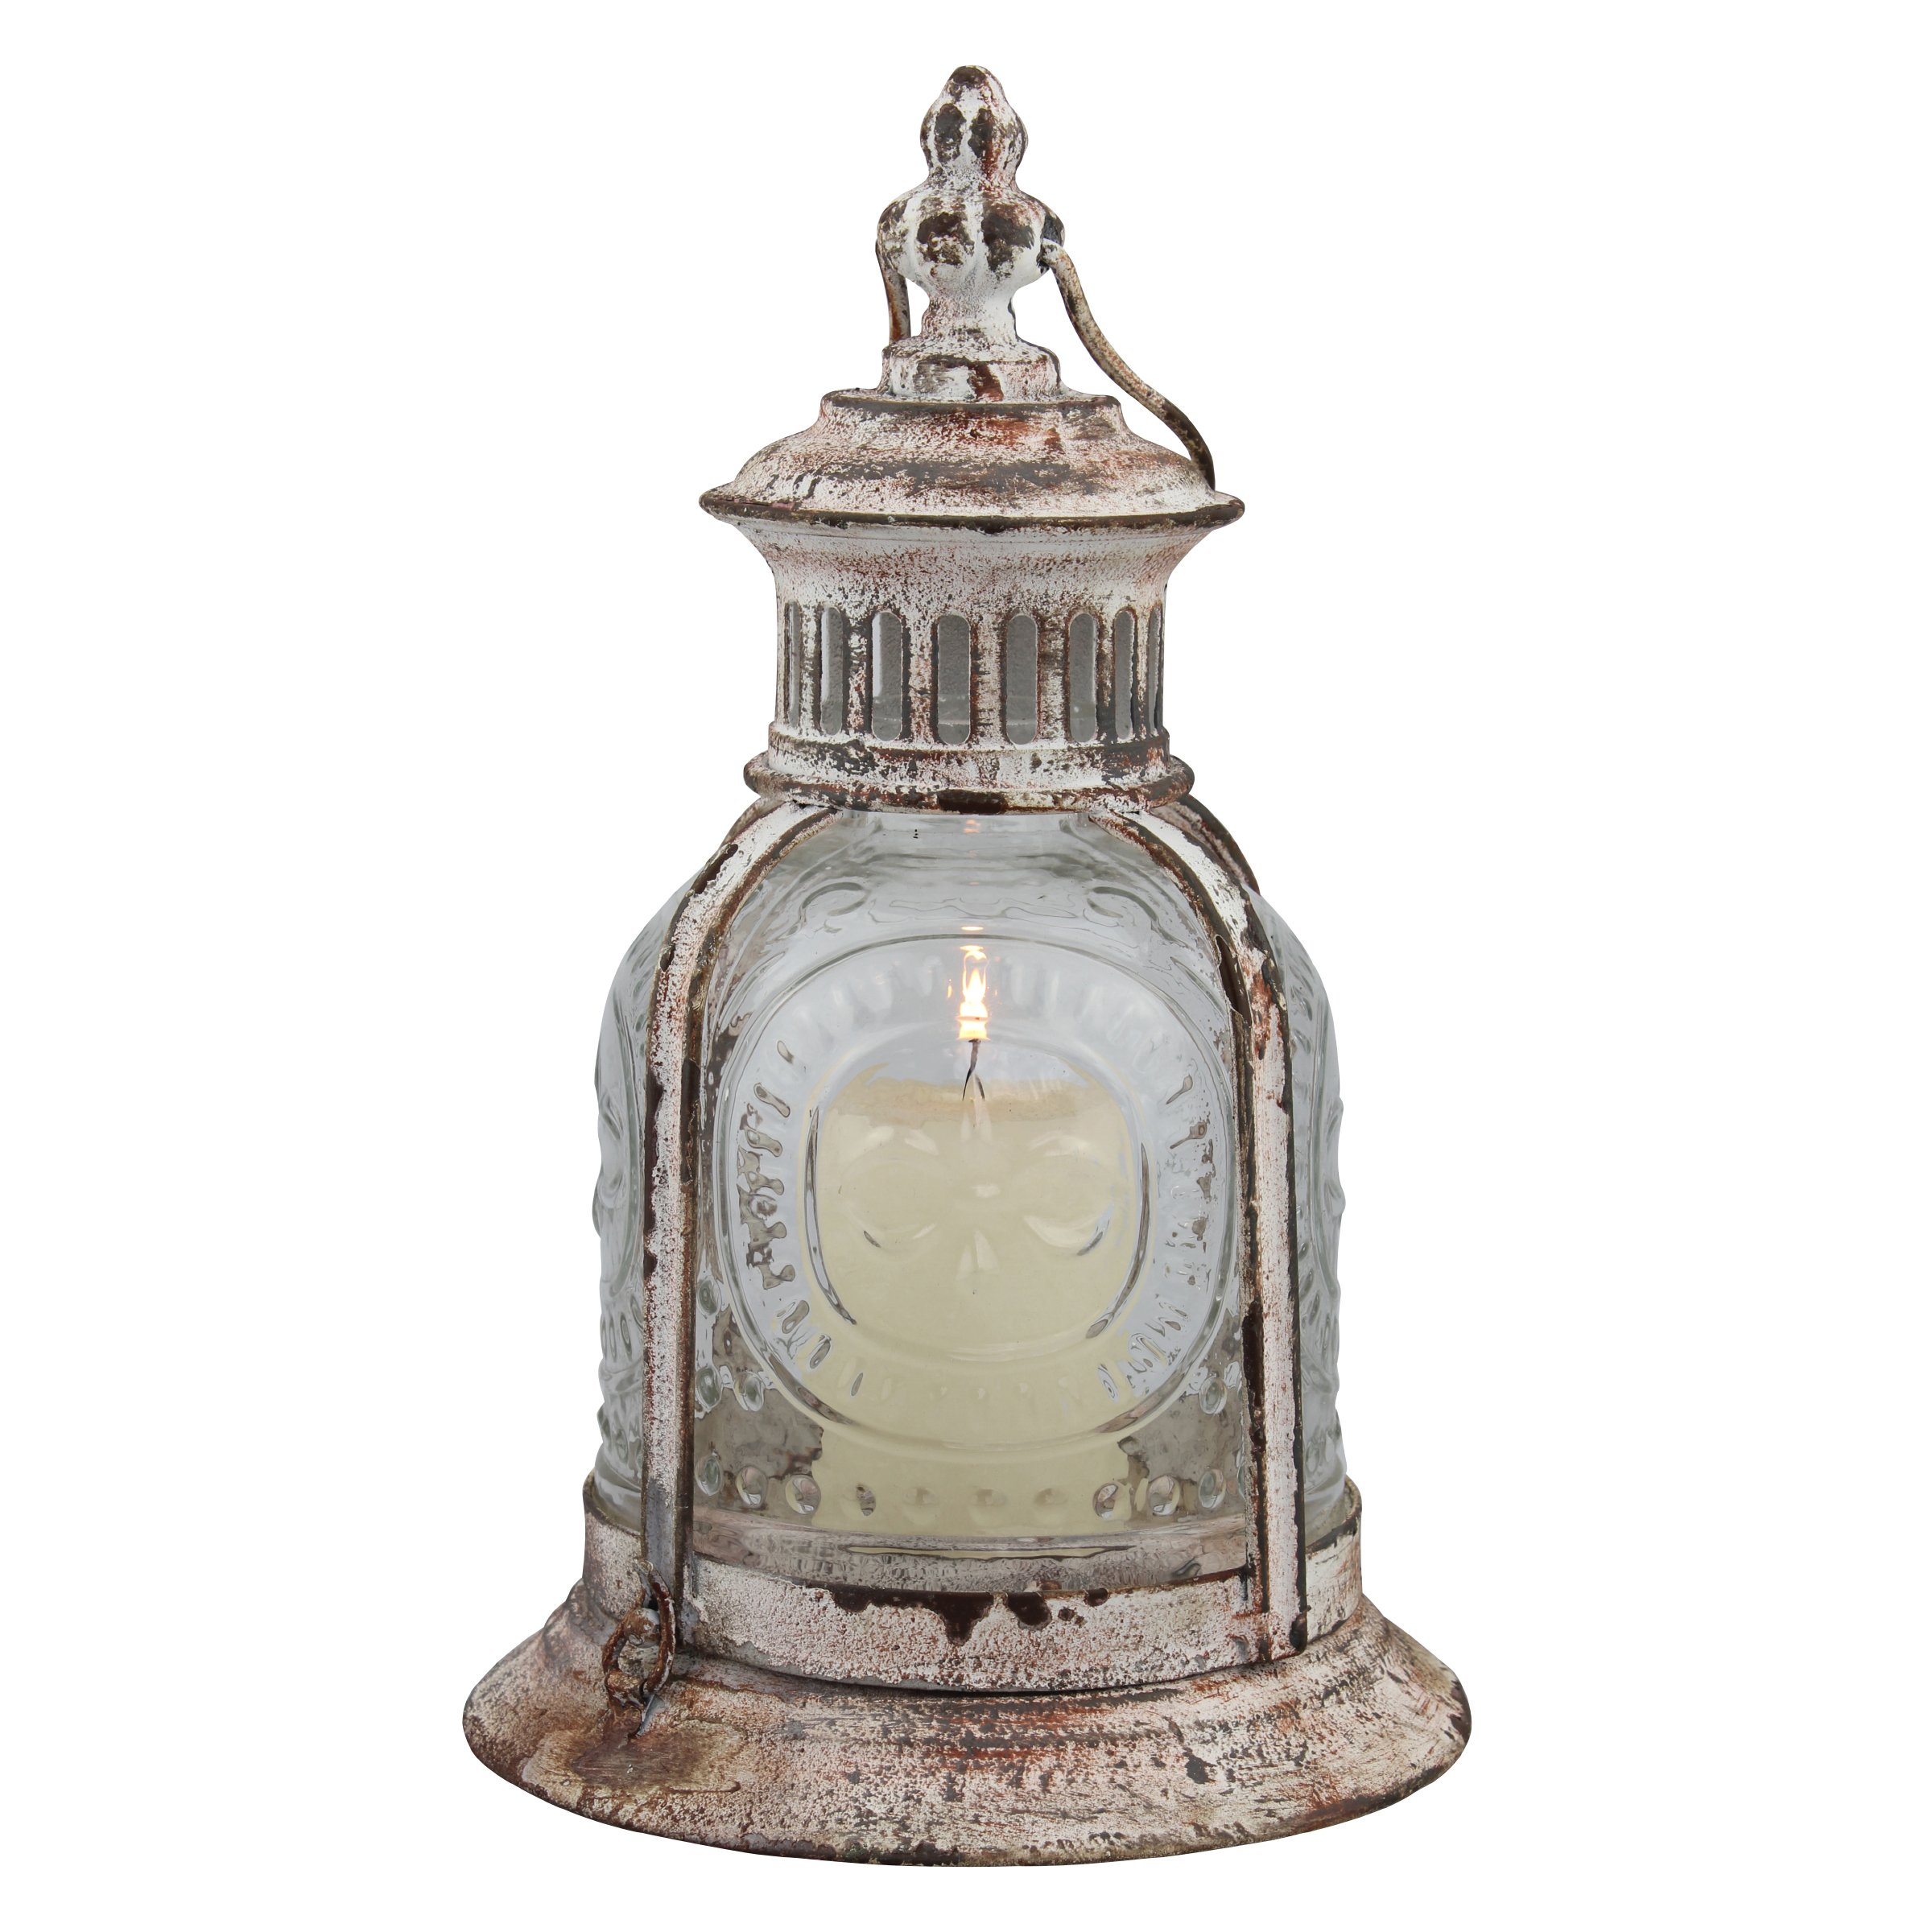 Stonebriar Antique White Metal Candle Lantern, Decoration for Birthday Parties, a Rustic Wedding Centerpiece, or Create a Relaxing Spa Setting, for Indoor or Outdoor Use by Stonebriar